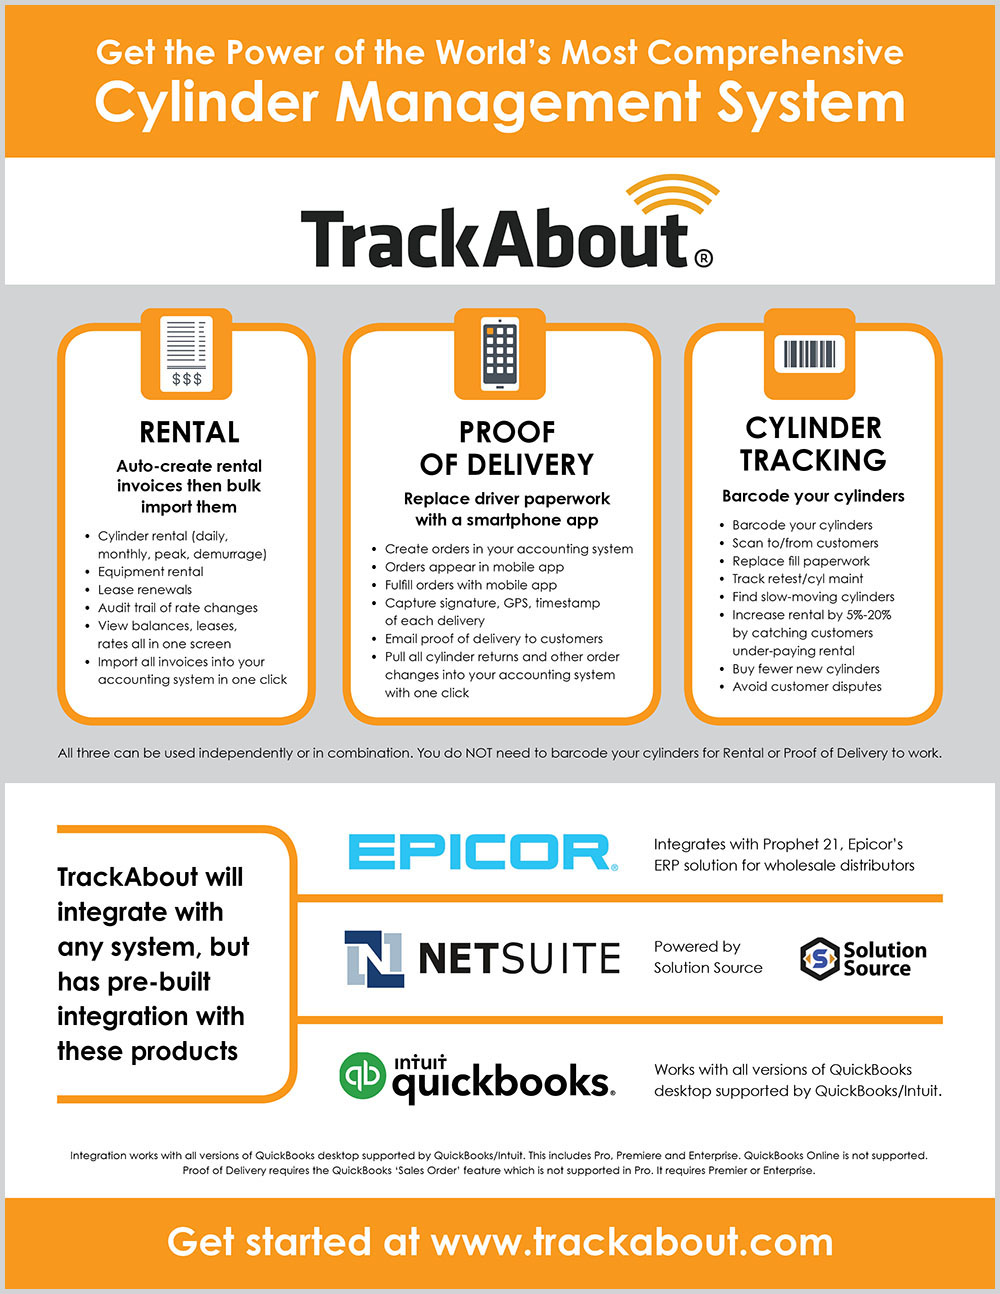 TRB - quickbooks flyer 5.14.jpg